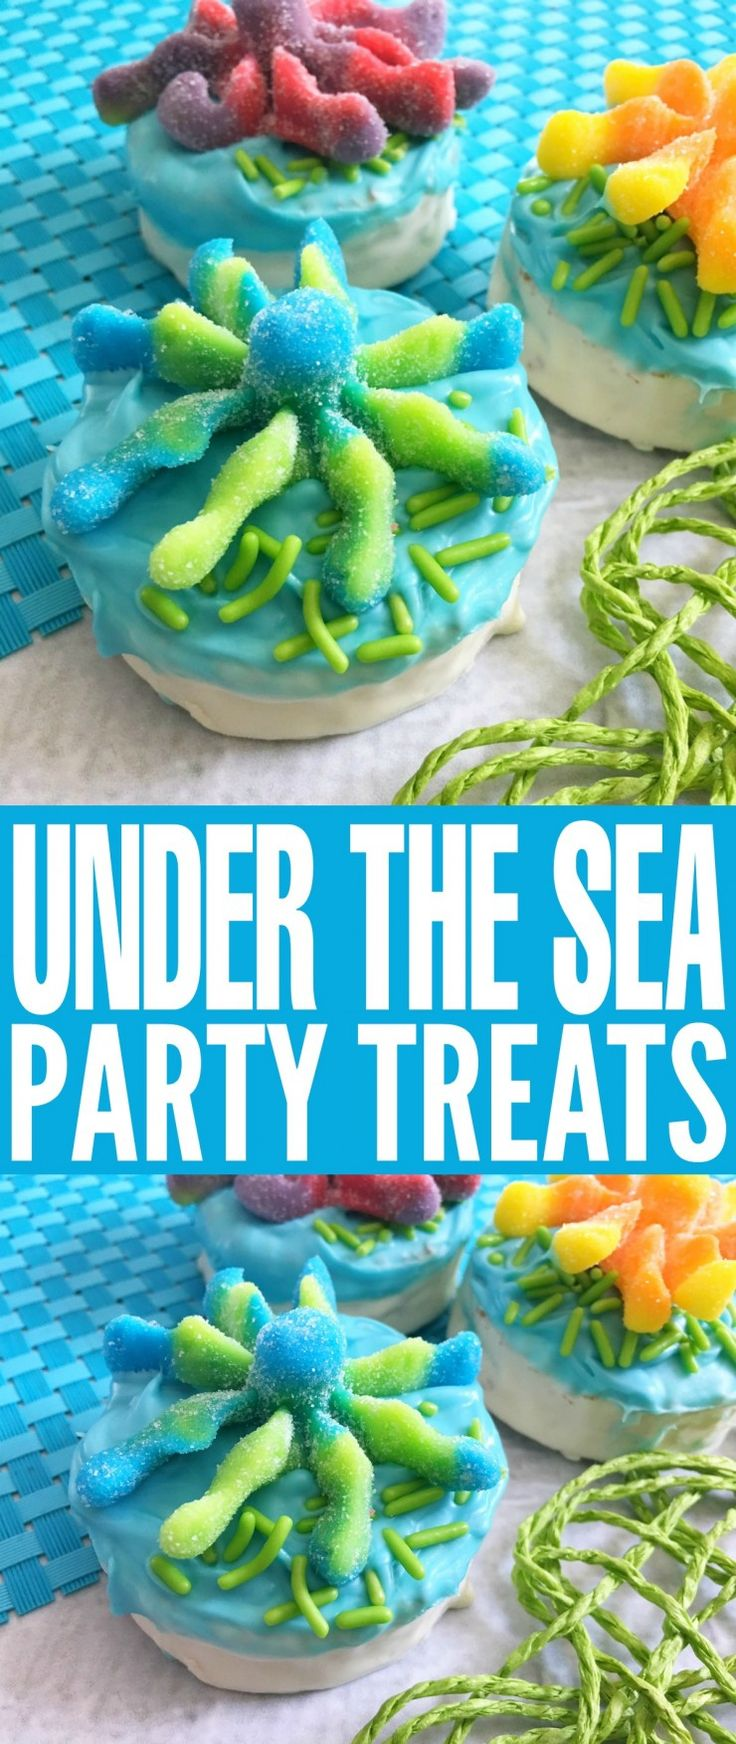 These adorable Under the Sea Party Treats are perfect for ocean themed birthday parties. They are a fun and easy treat that kids will adore and they are perfect for Under the Sea Birthday Parties!